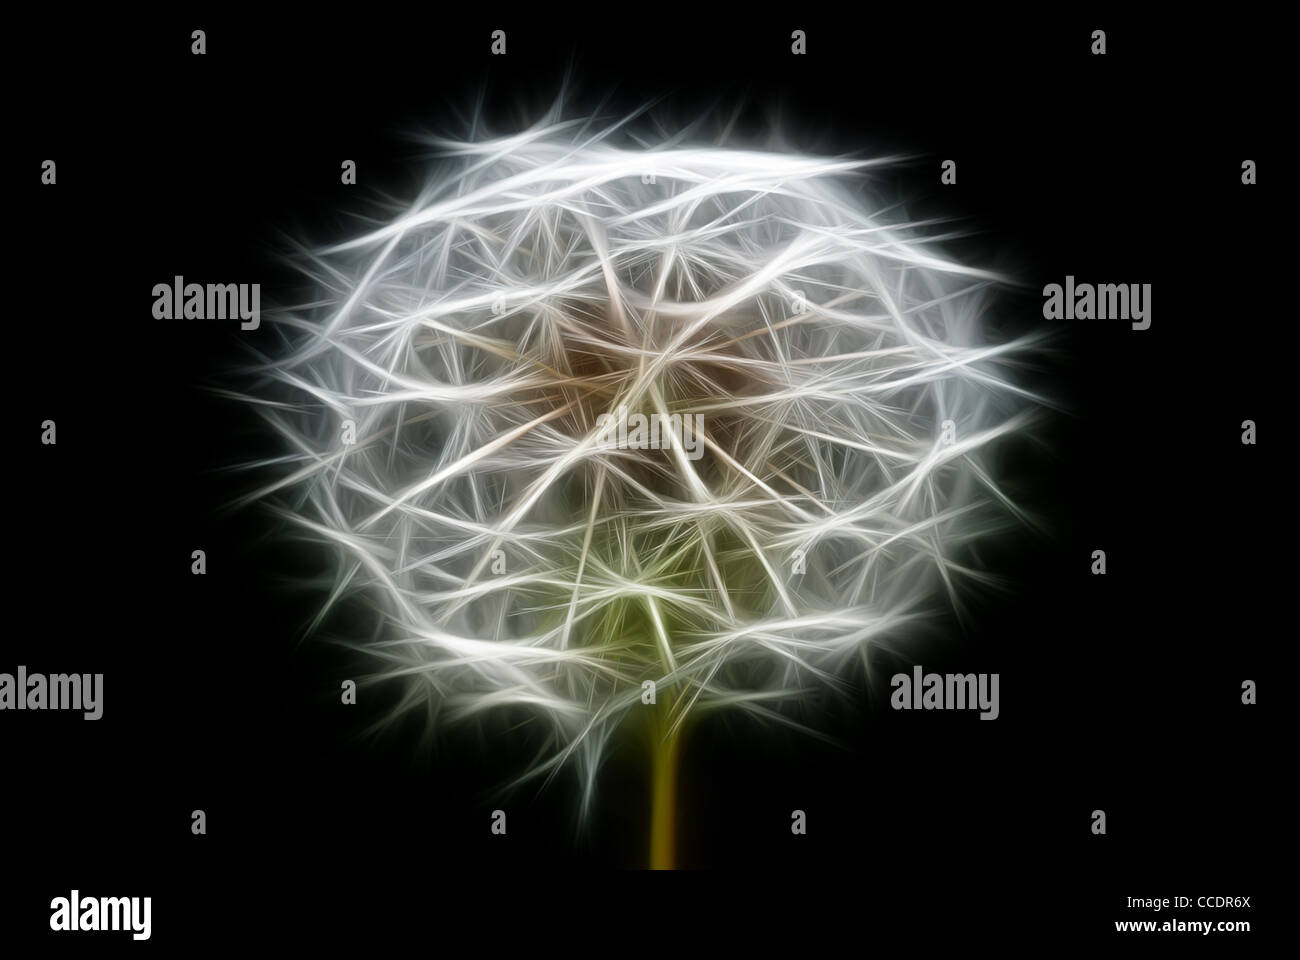 abstract dandelion, photo with graphic special effects Stock Photo